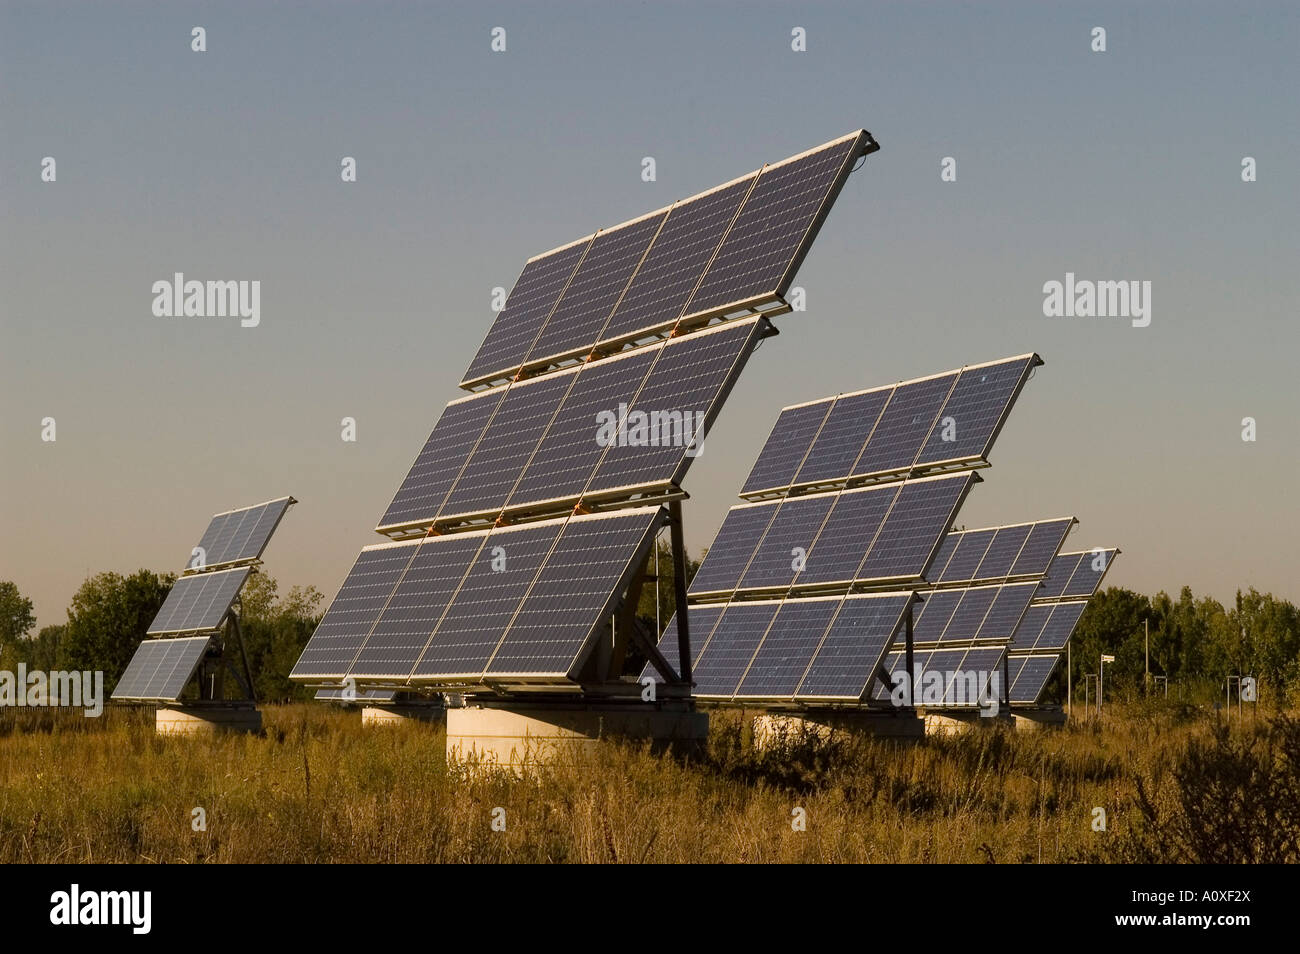 Solar modules in a testing ground - Stock Image